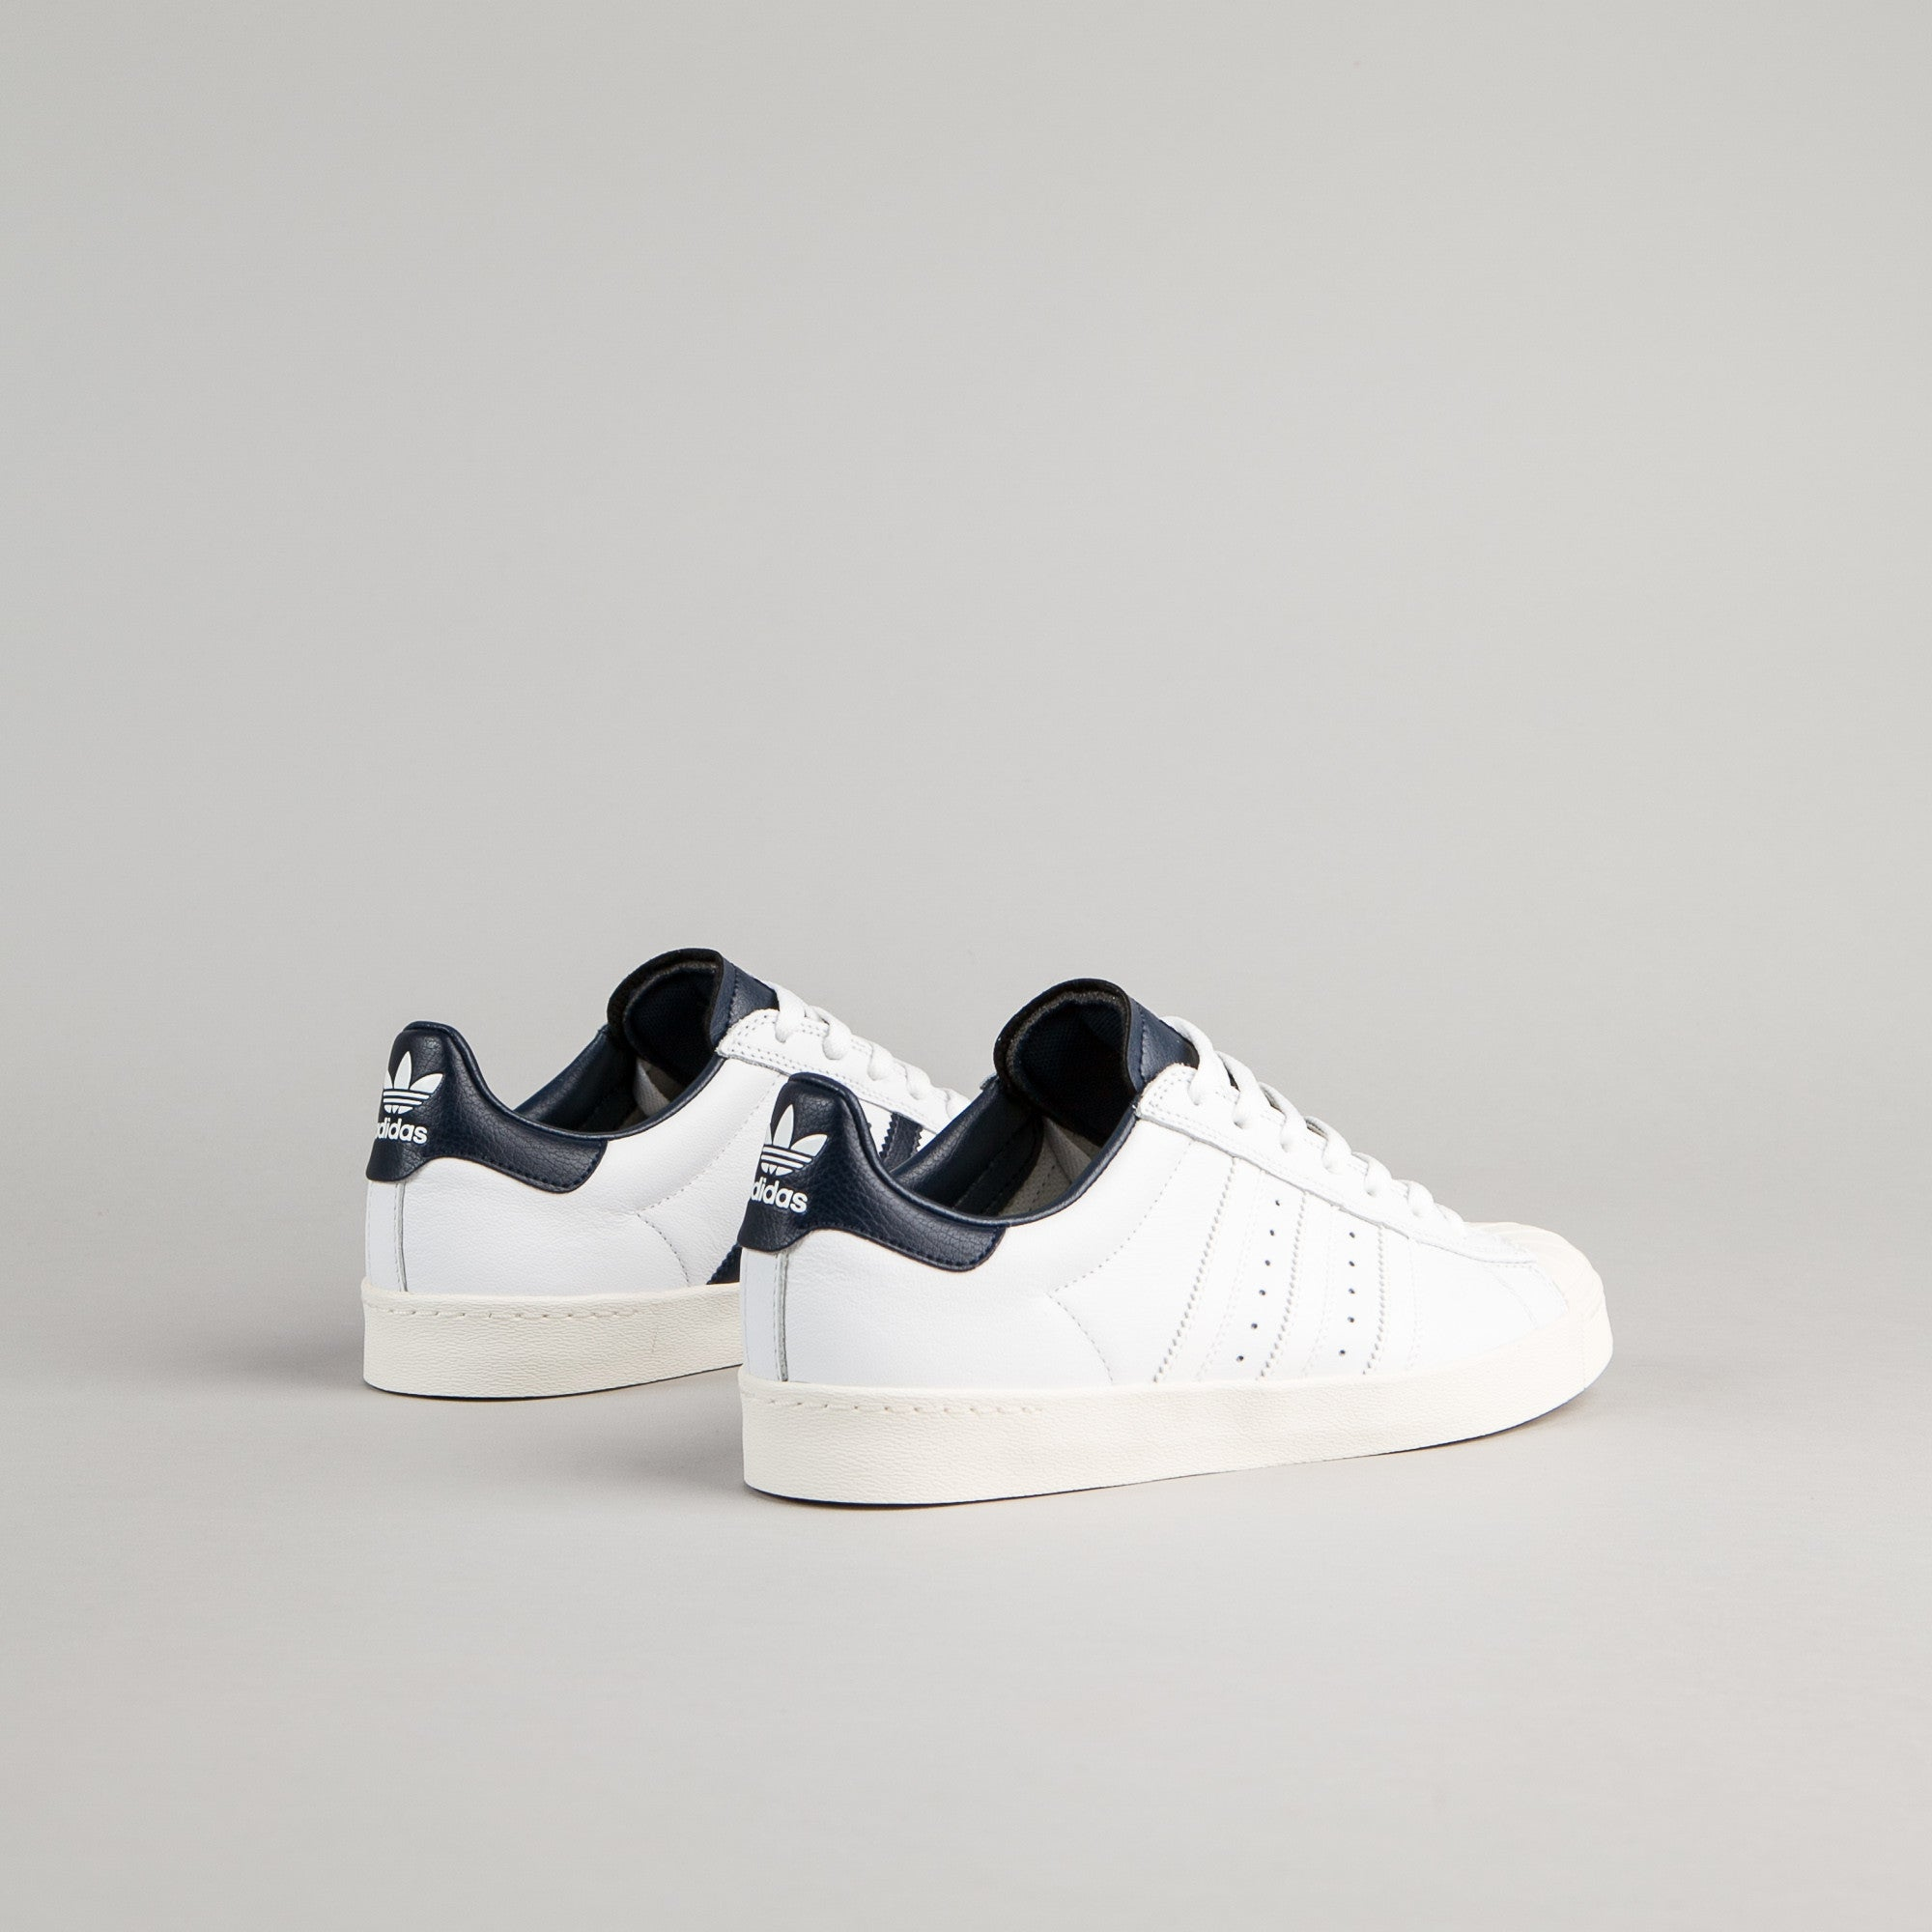 Cheap Adidas Superstar 80s Clean Shoes Black Cheap Adidas US